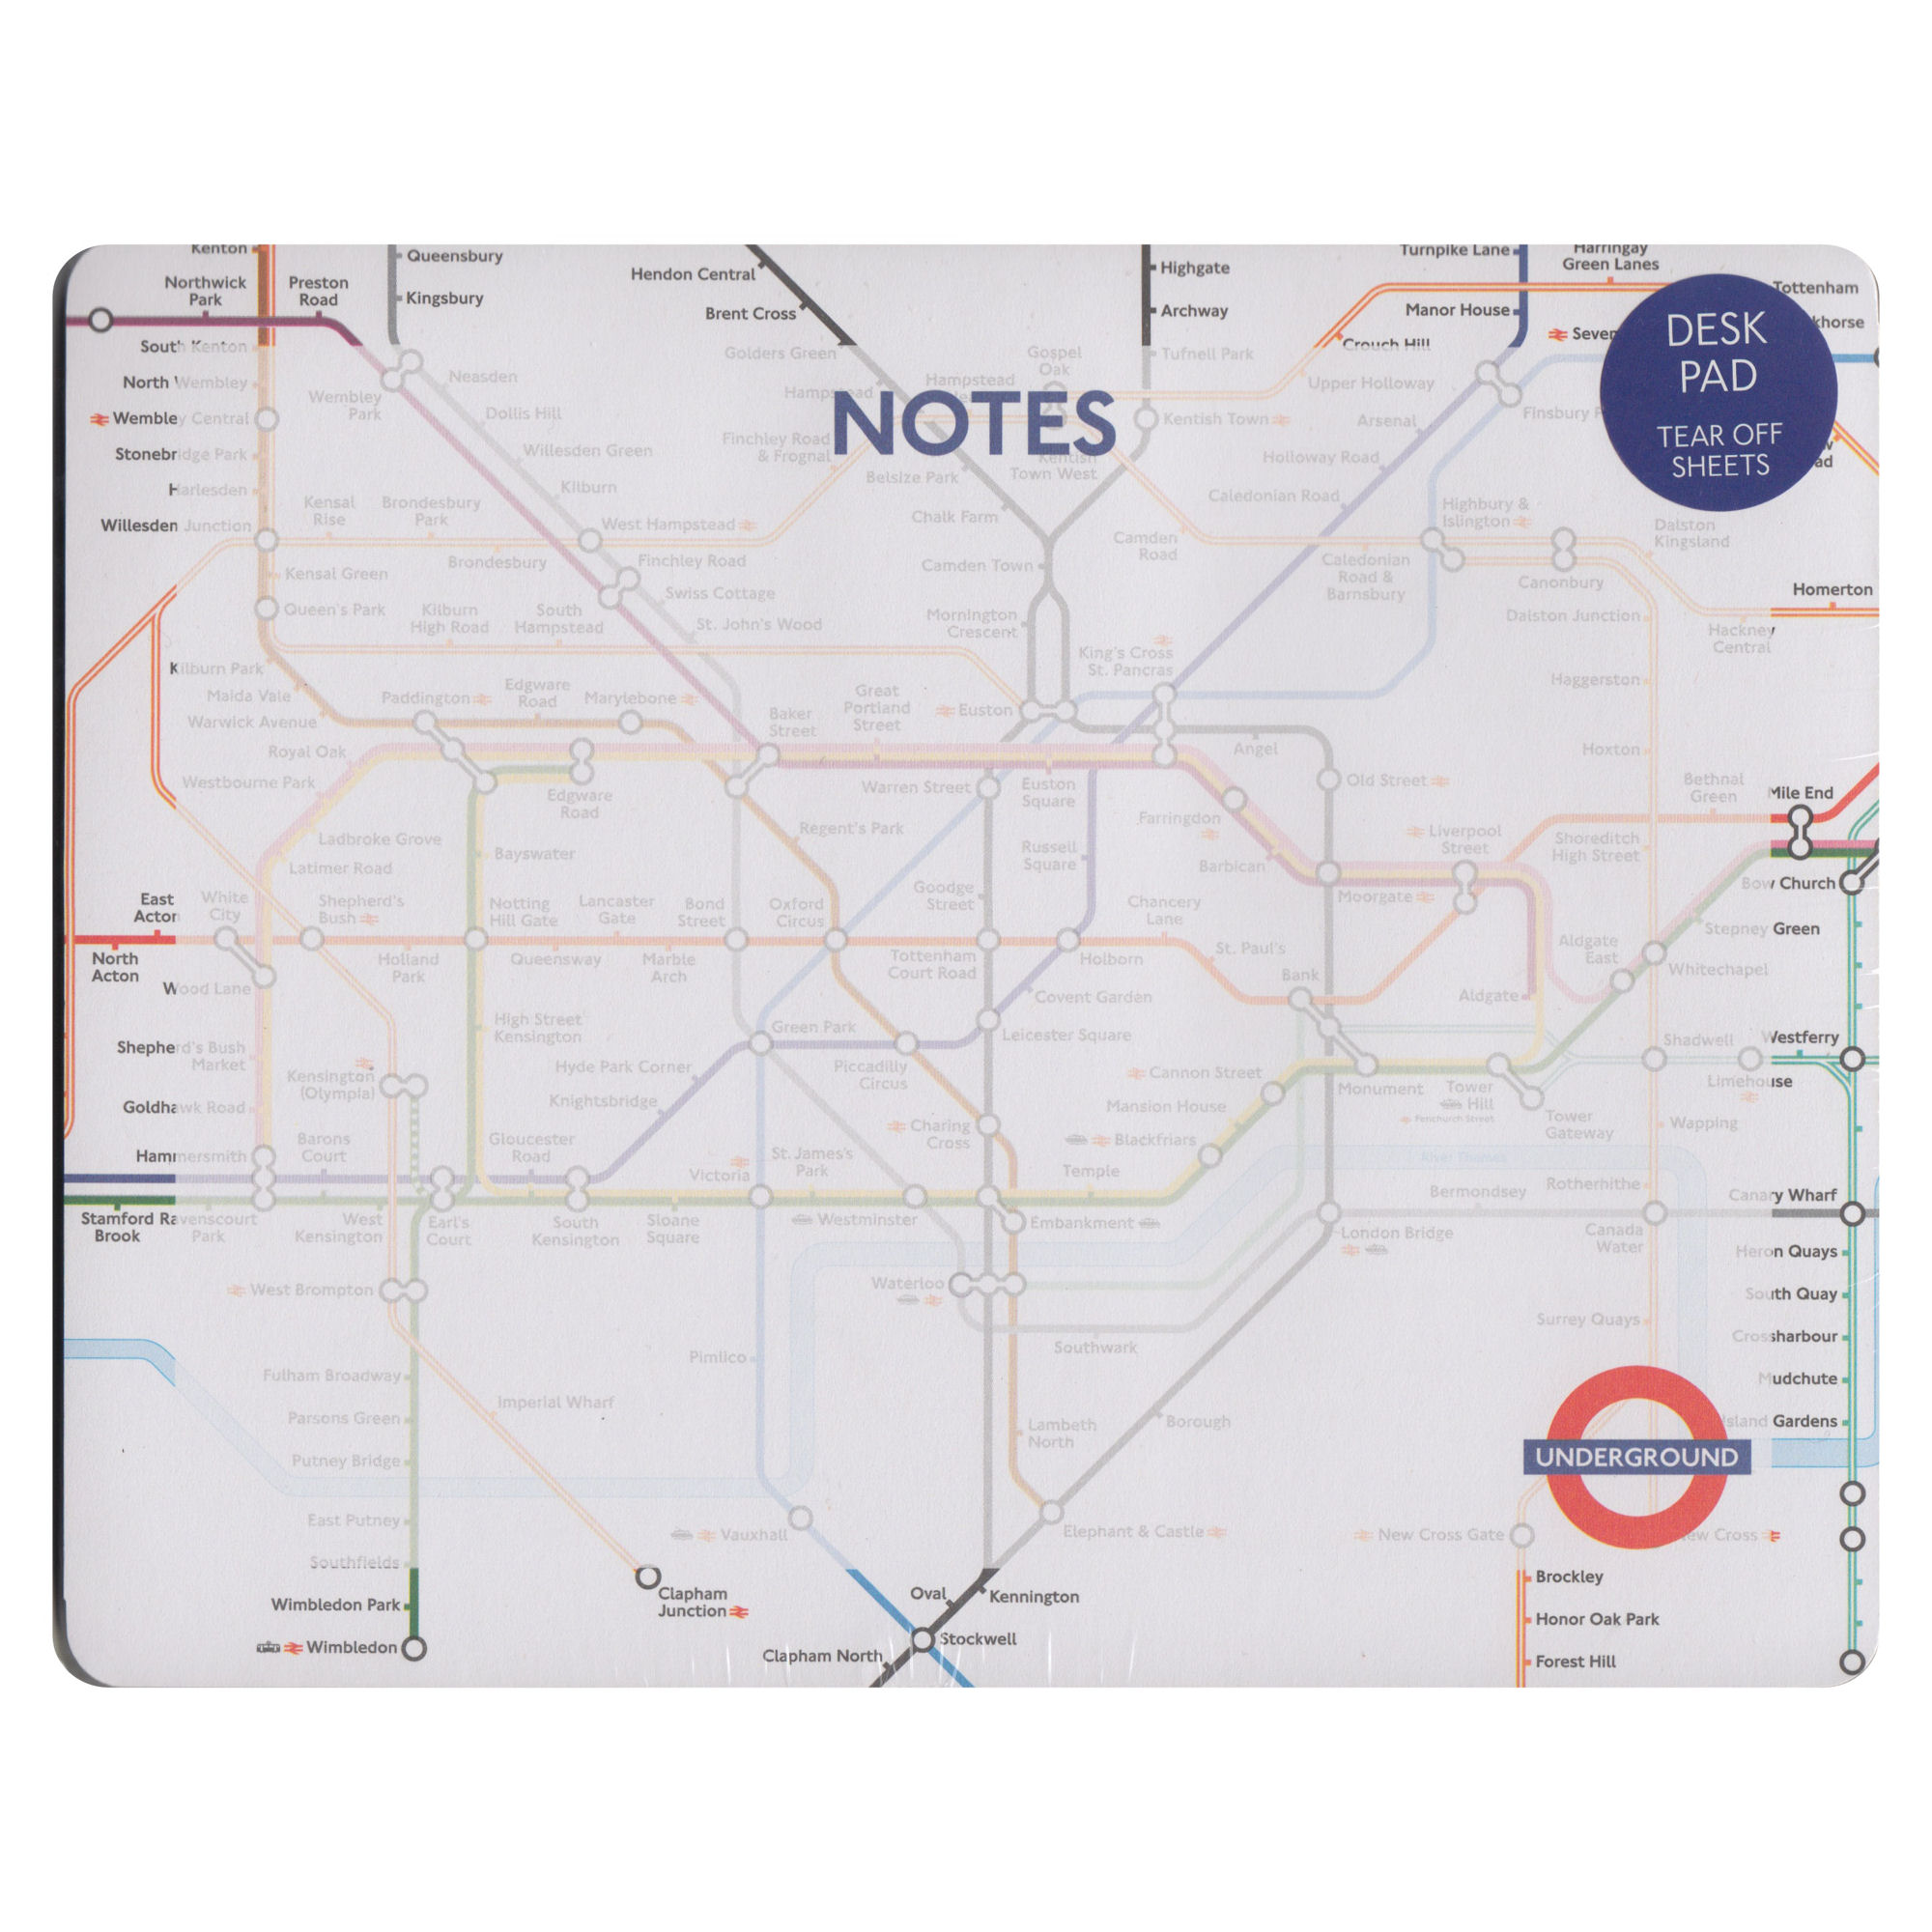 London Underground Tear Off Mouse Mat Pad